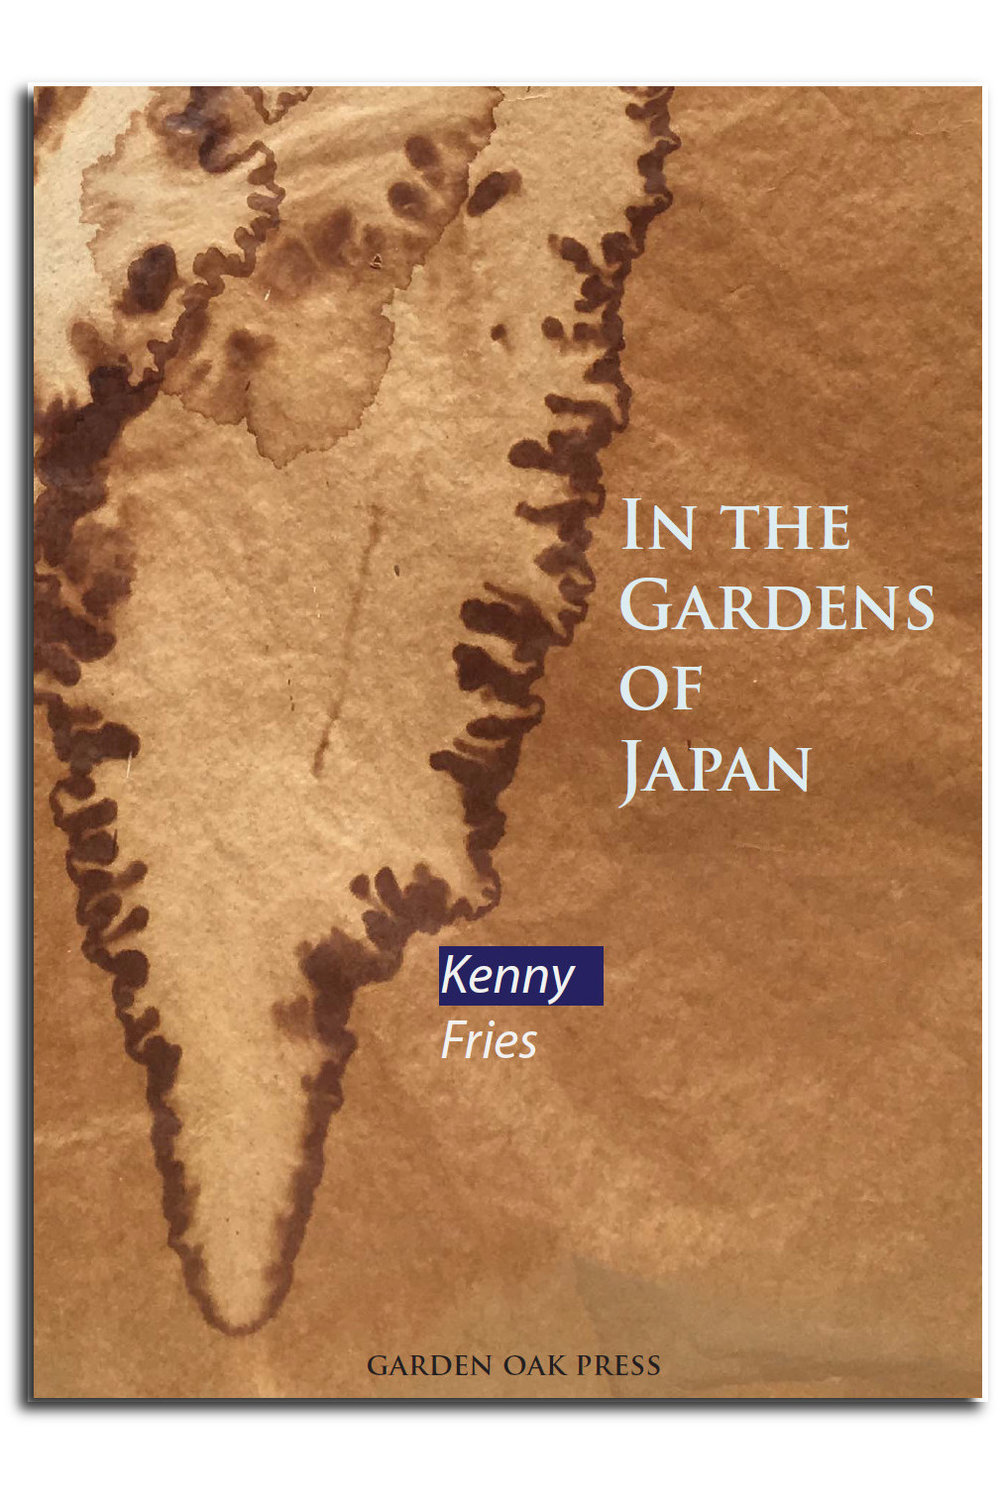 In the Gardens of Japan: A Poem Sequence By Kenny Fries To be published in September by Garden Oak Press.